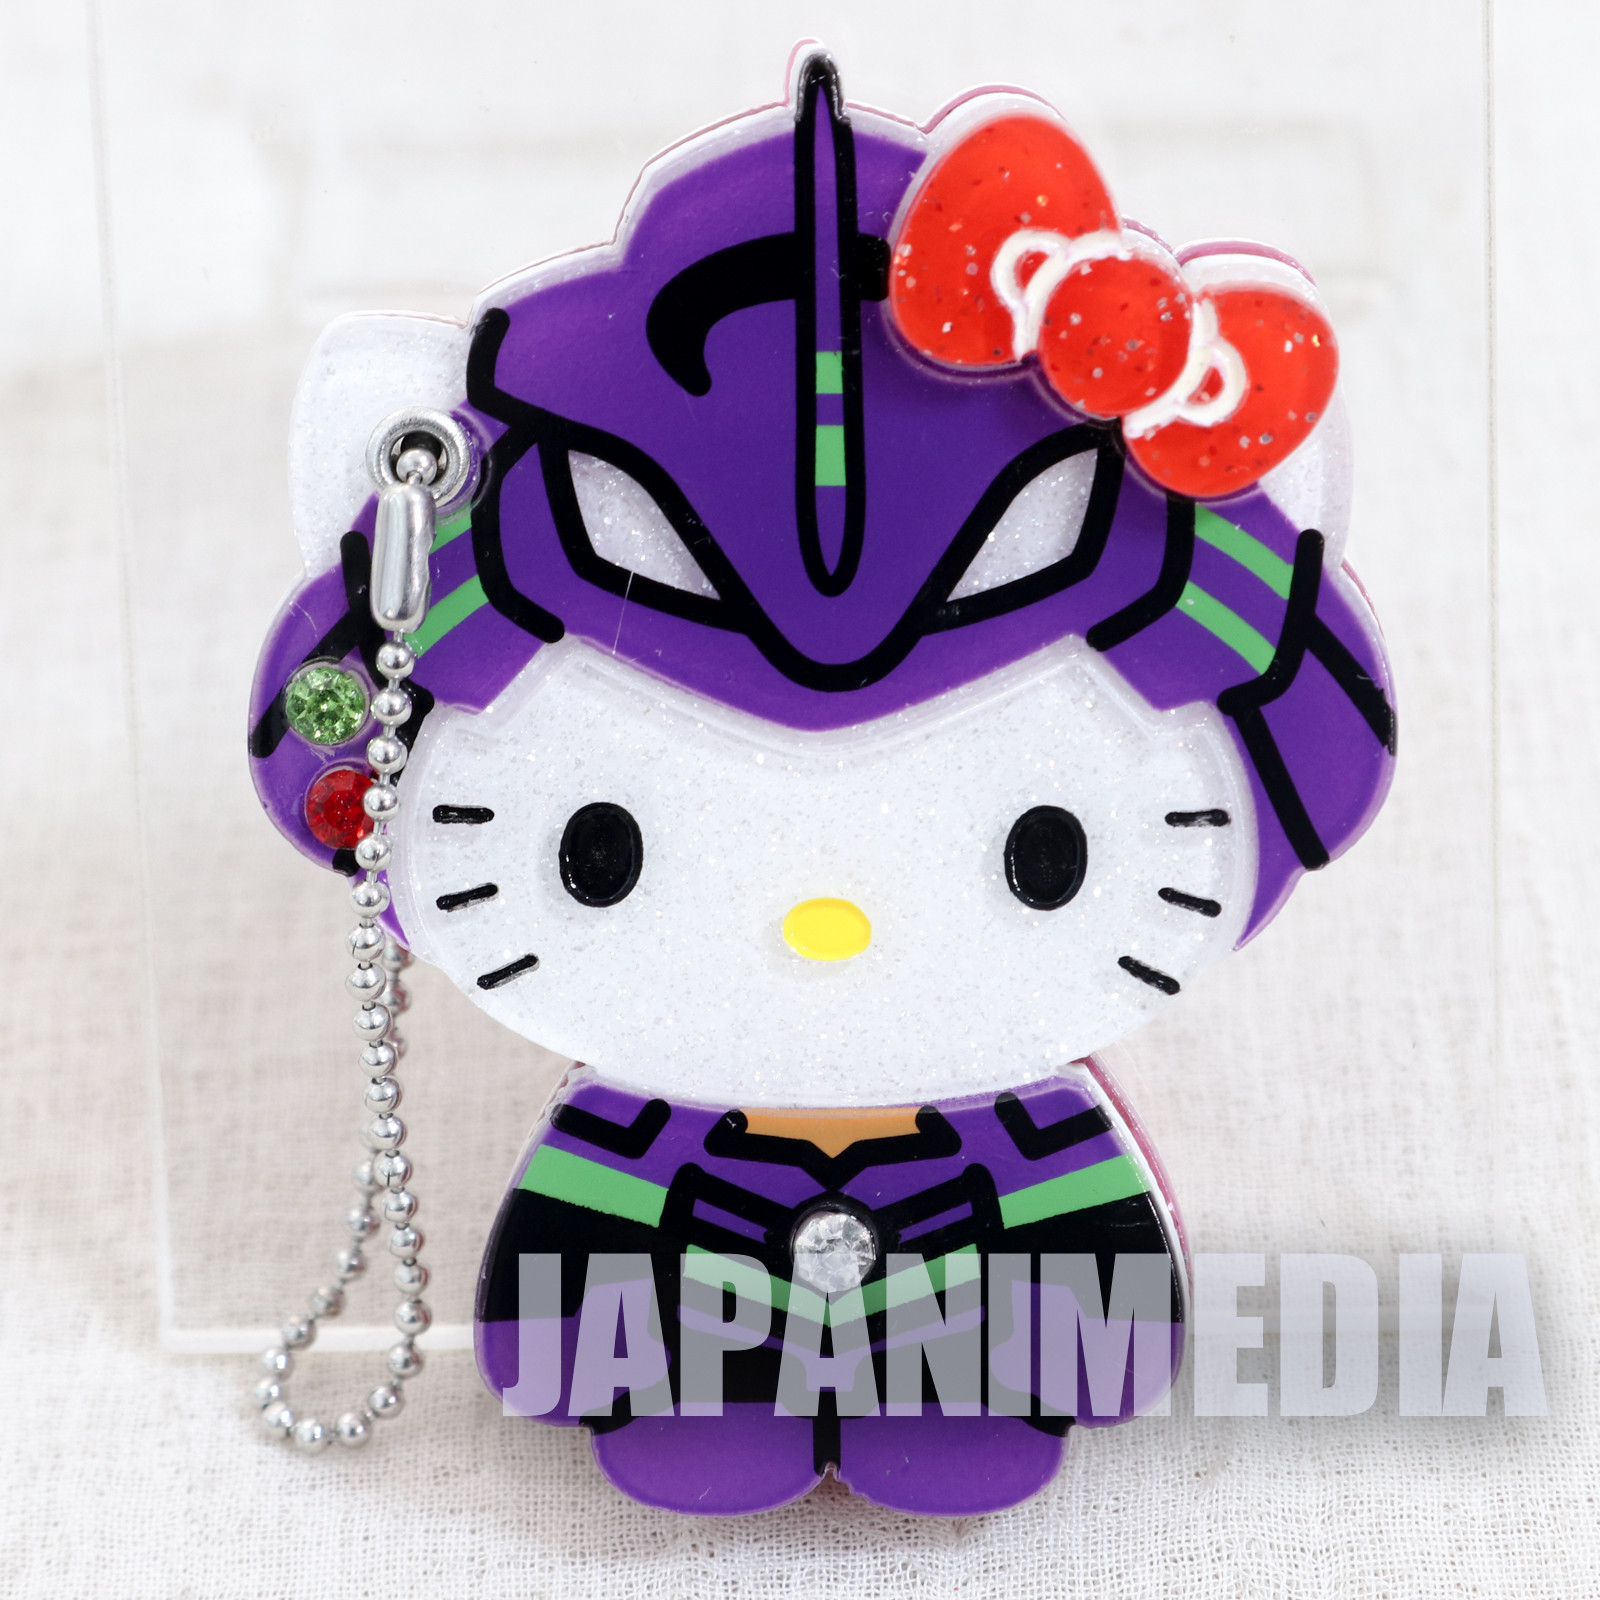 Evangelion x Hello Kitty EVA-01 Hand Mirror Ballchain Sanrio JAPAN